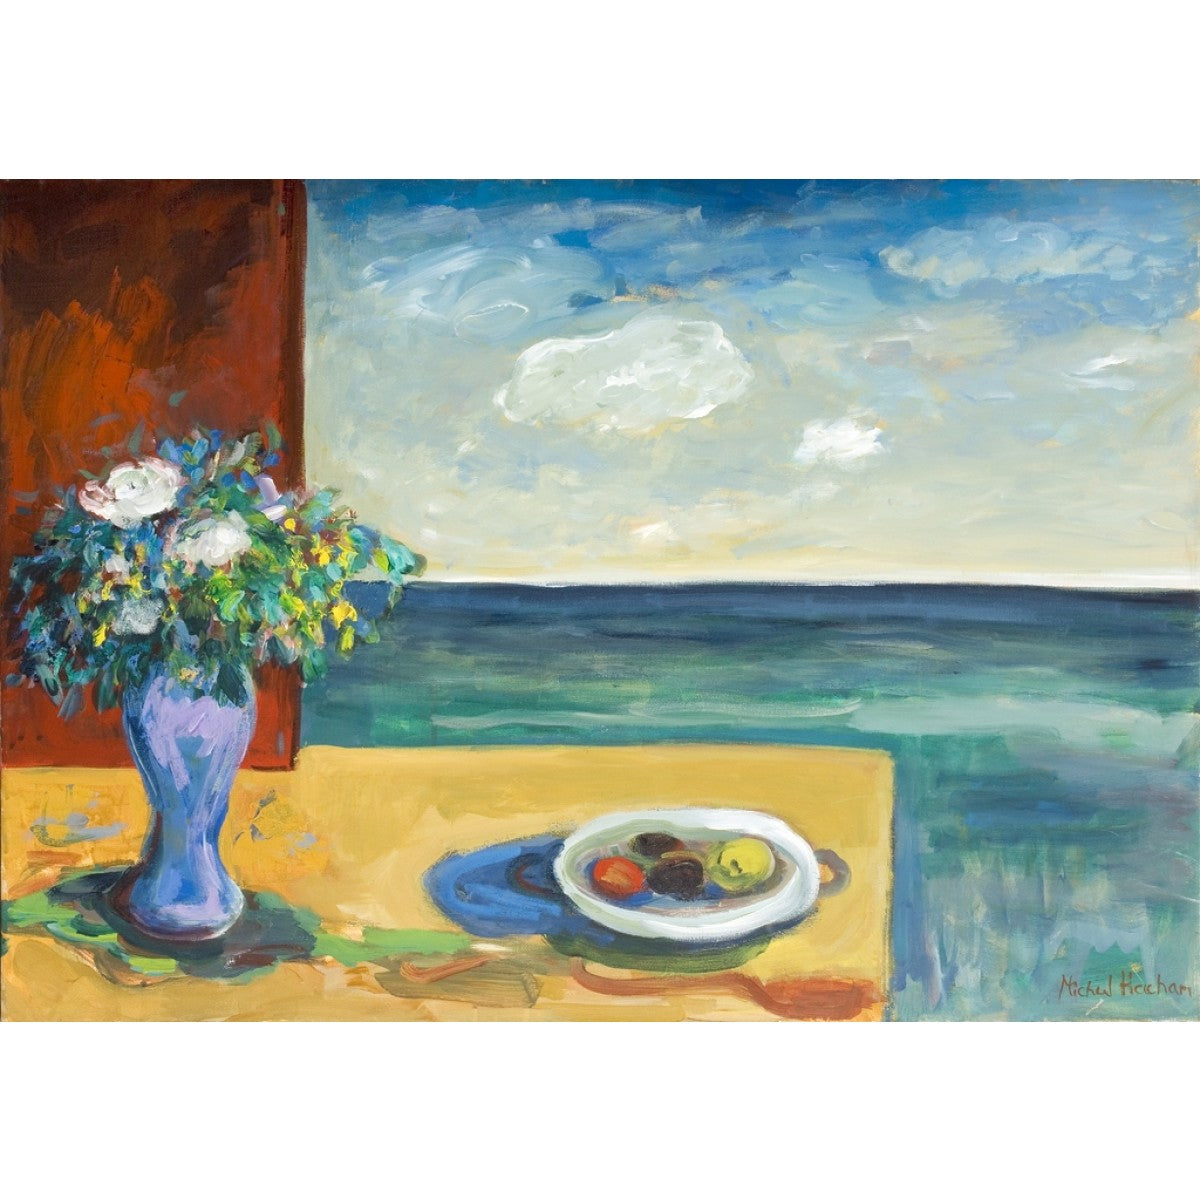 Fruit Plate and Flowers With an Ocean View By Michal Hacham